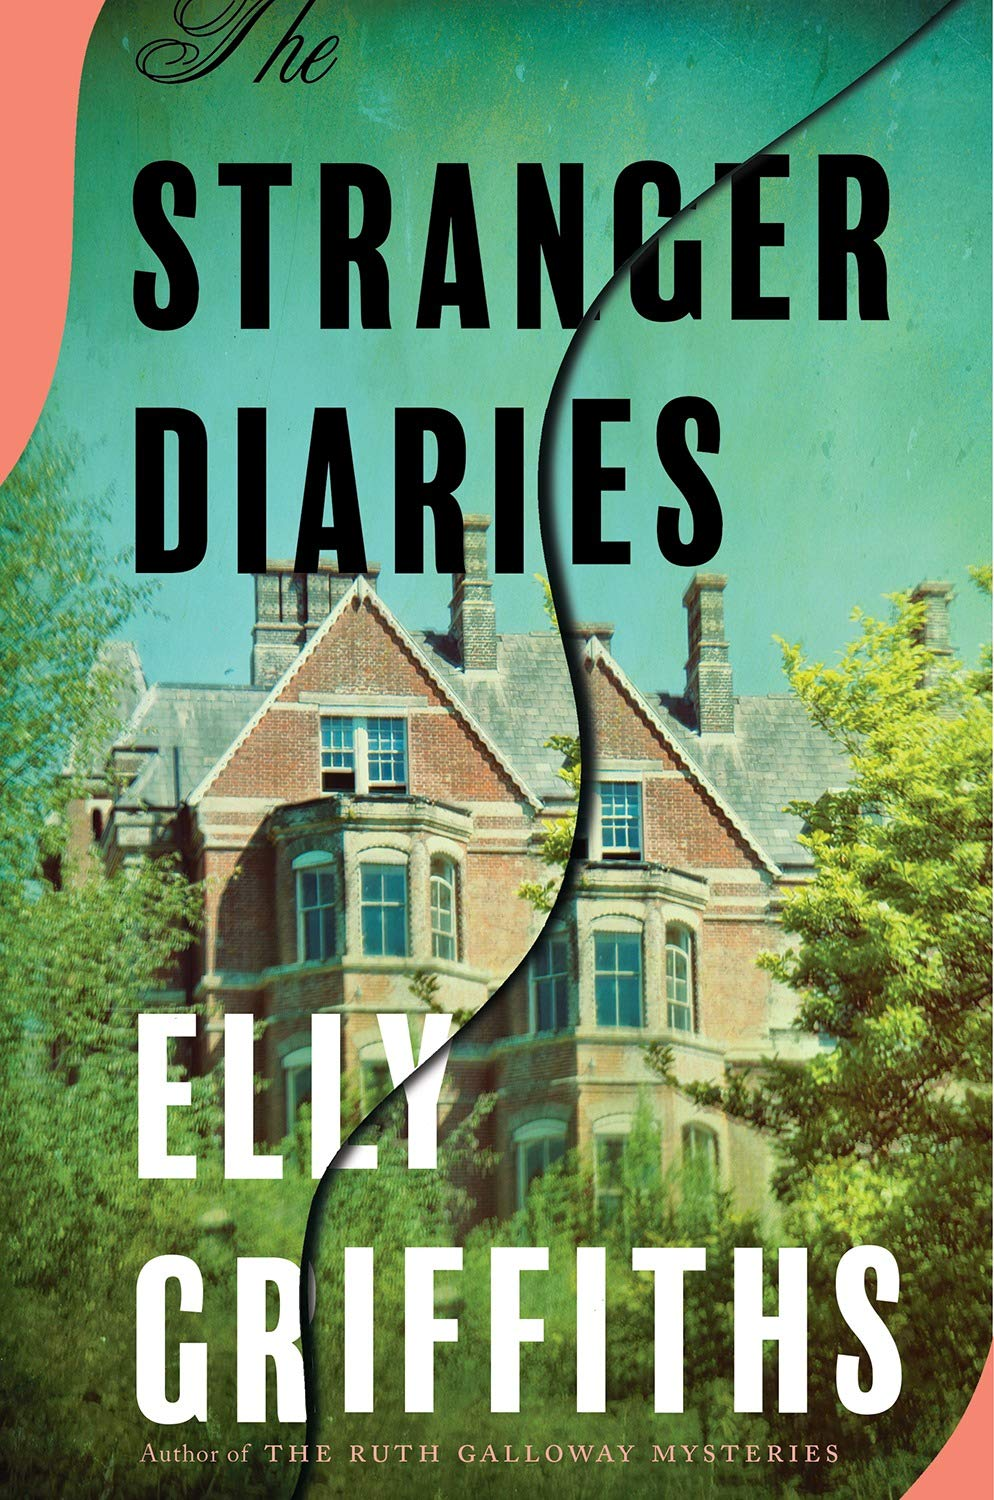 Amazon.com: The Stranger Diaries (9781328577856): Griffiths, Elly: Books